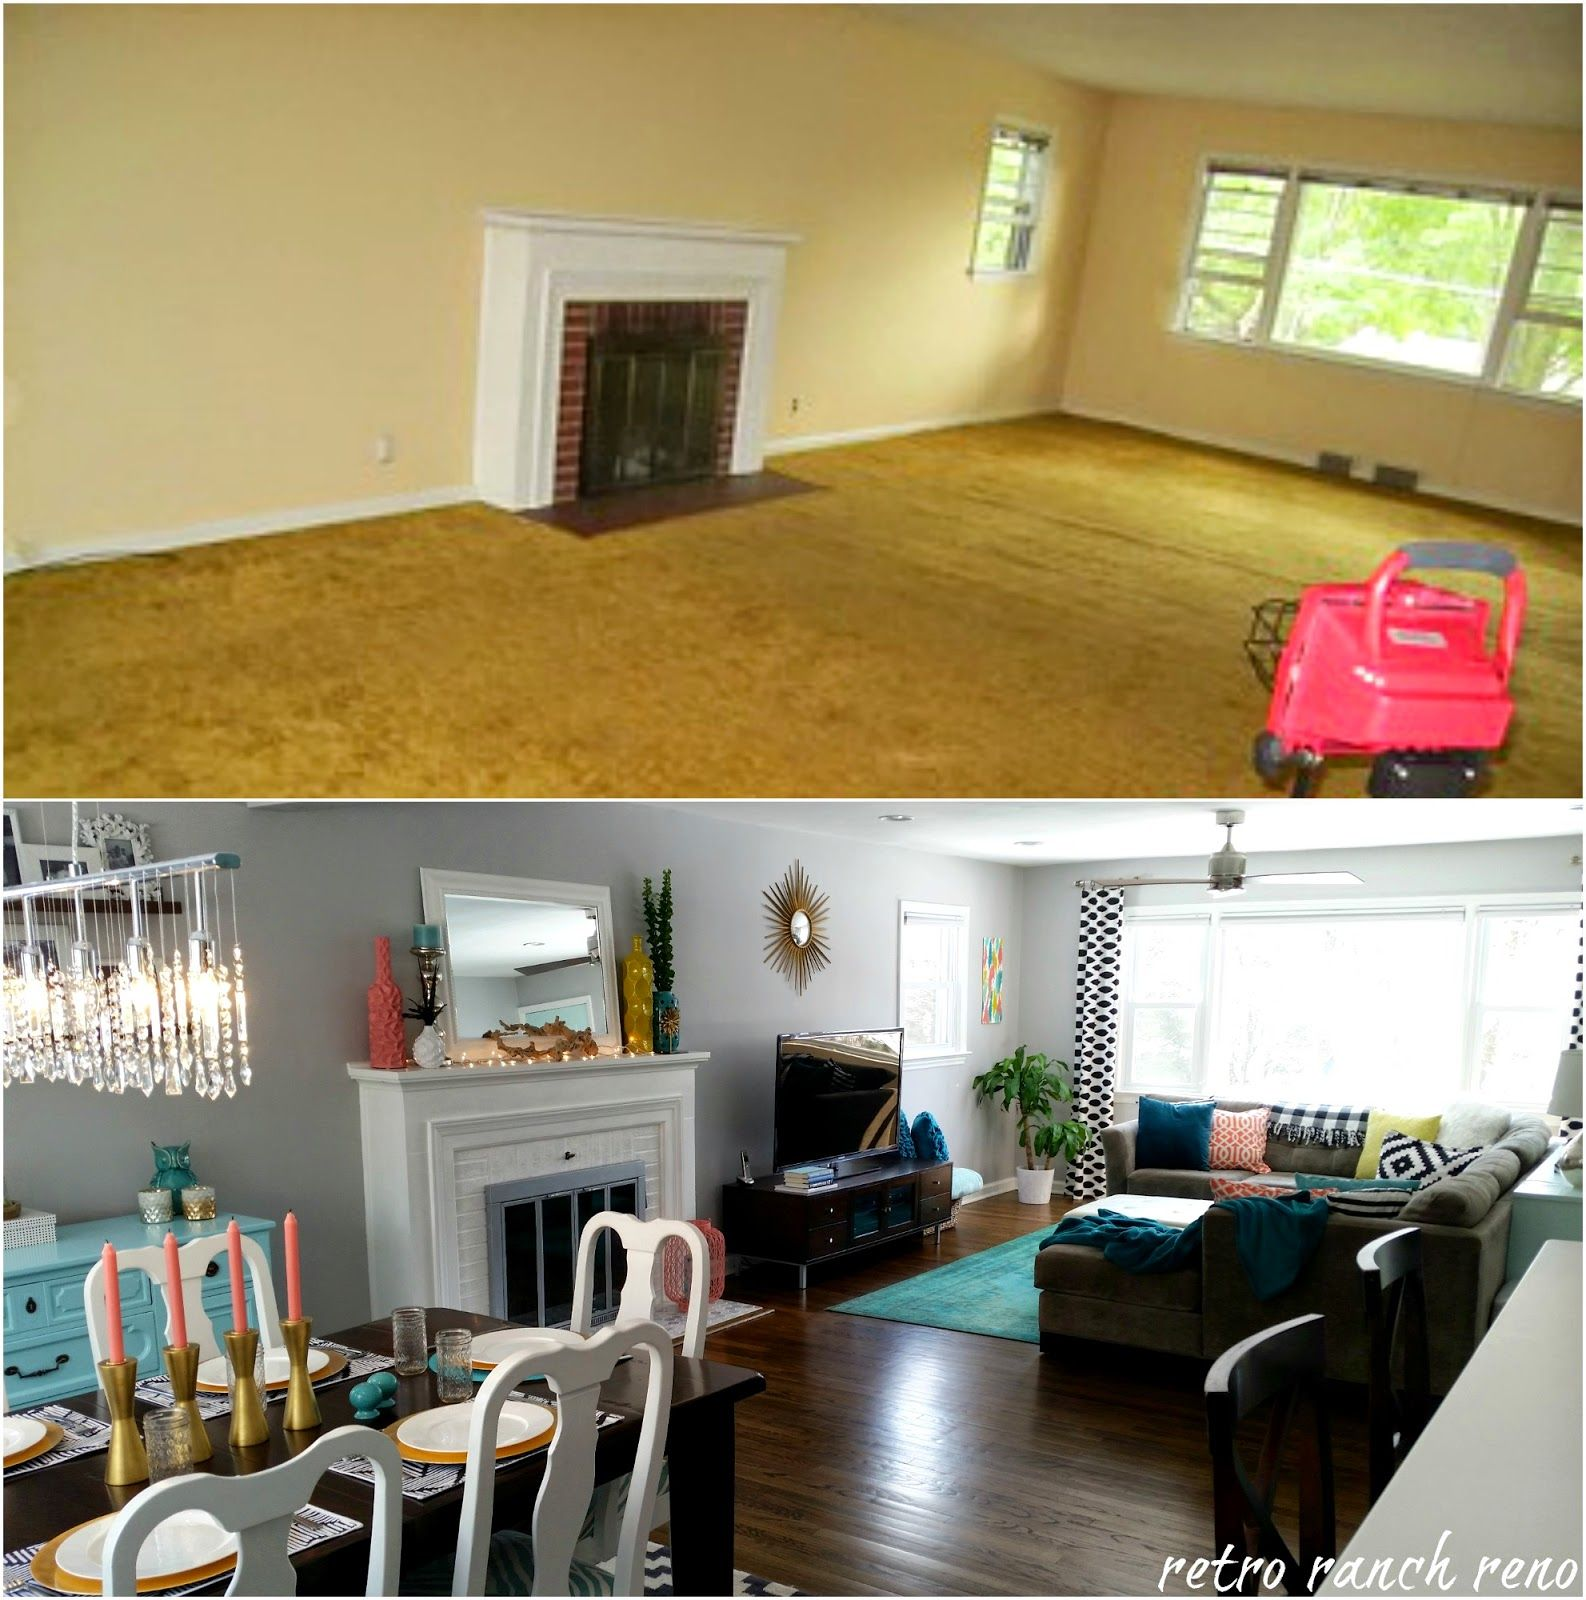 Our Rancher: Before & After - The Dining Room.